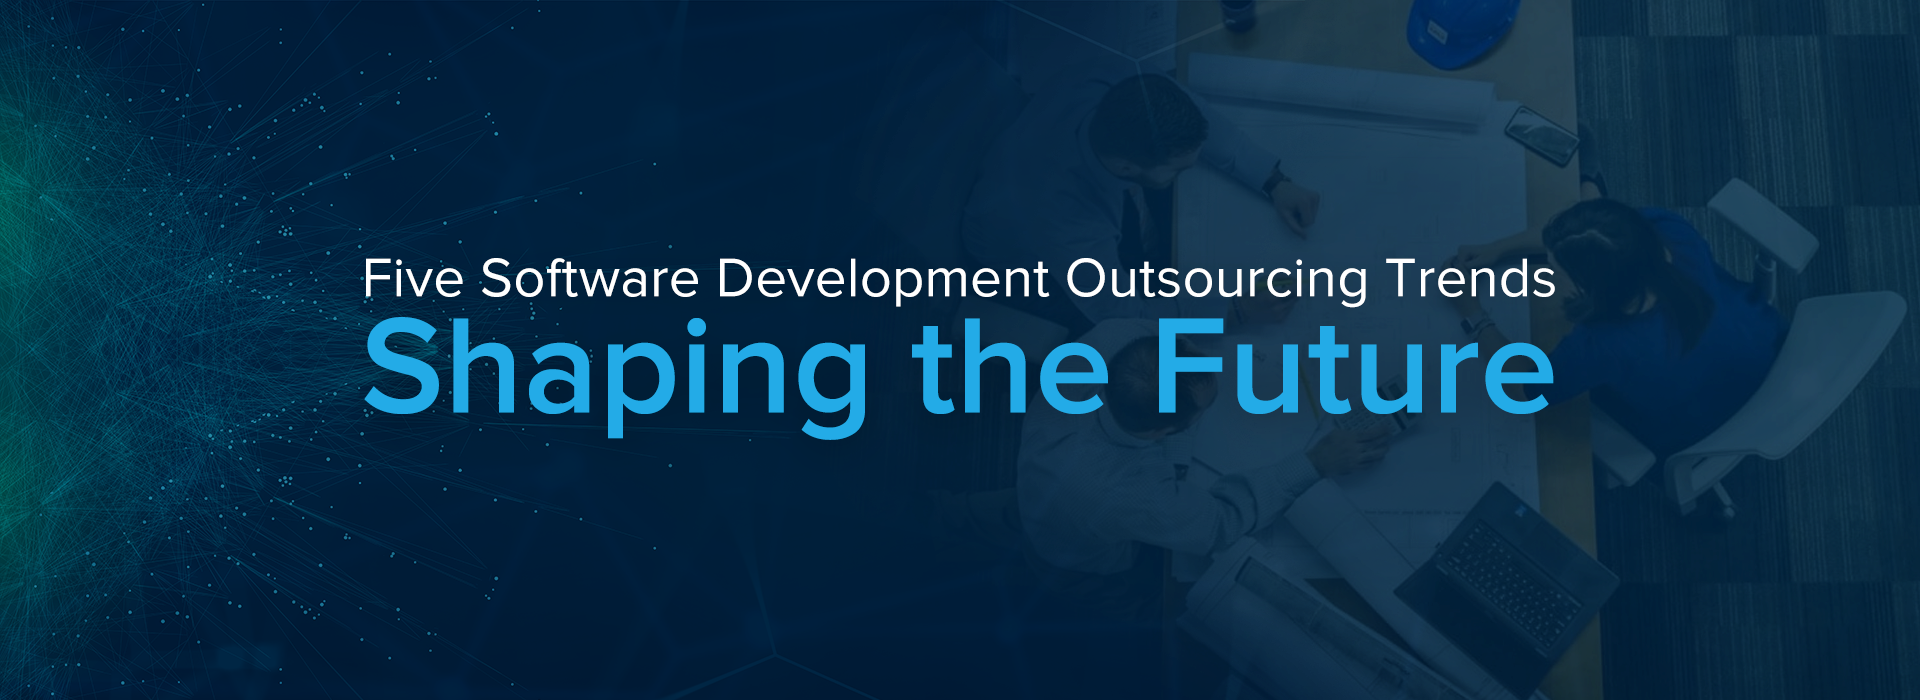 Five-Software-Development-Outsourcing-Trends-Shaping-the-Future